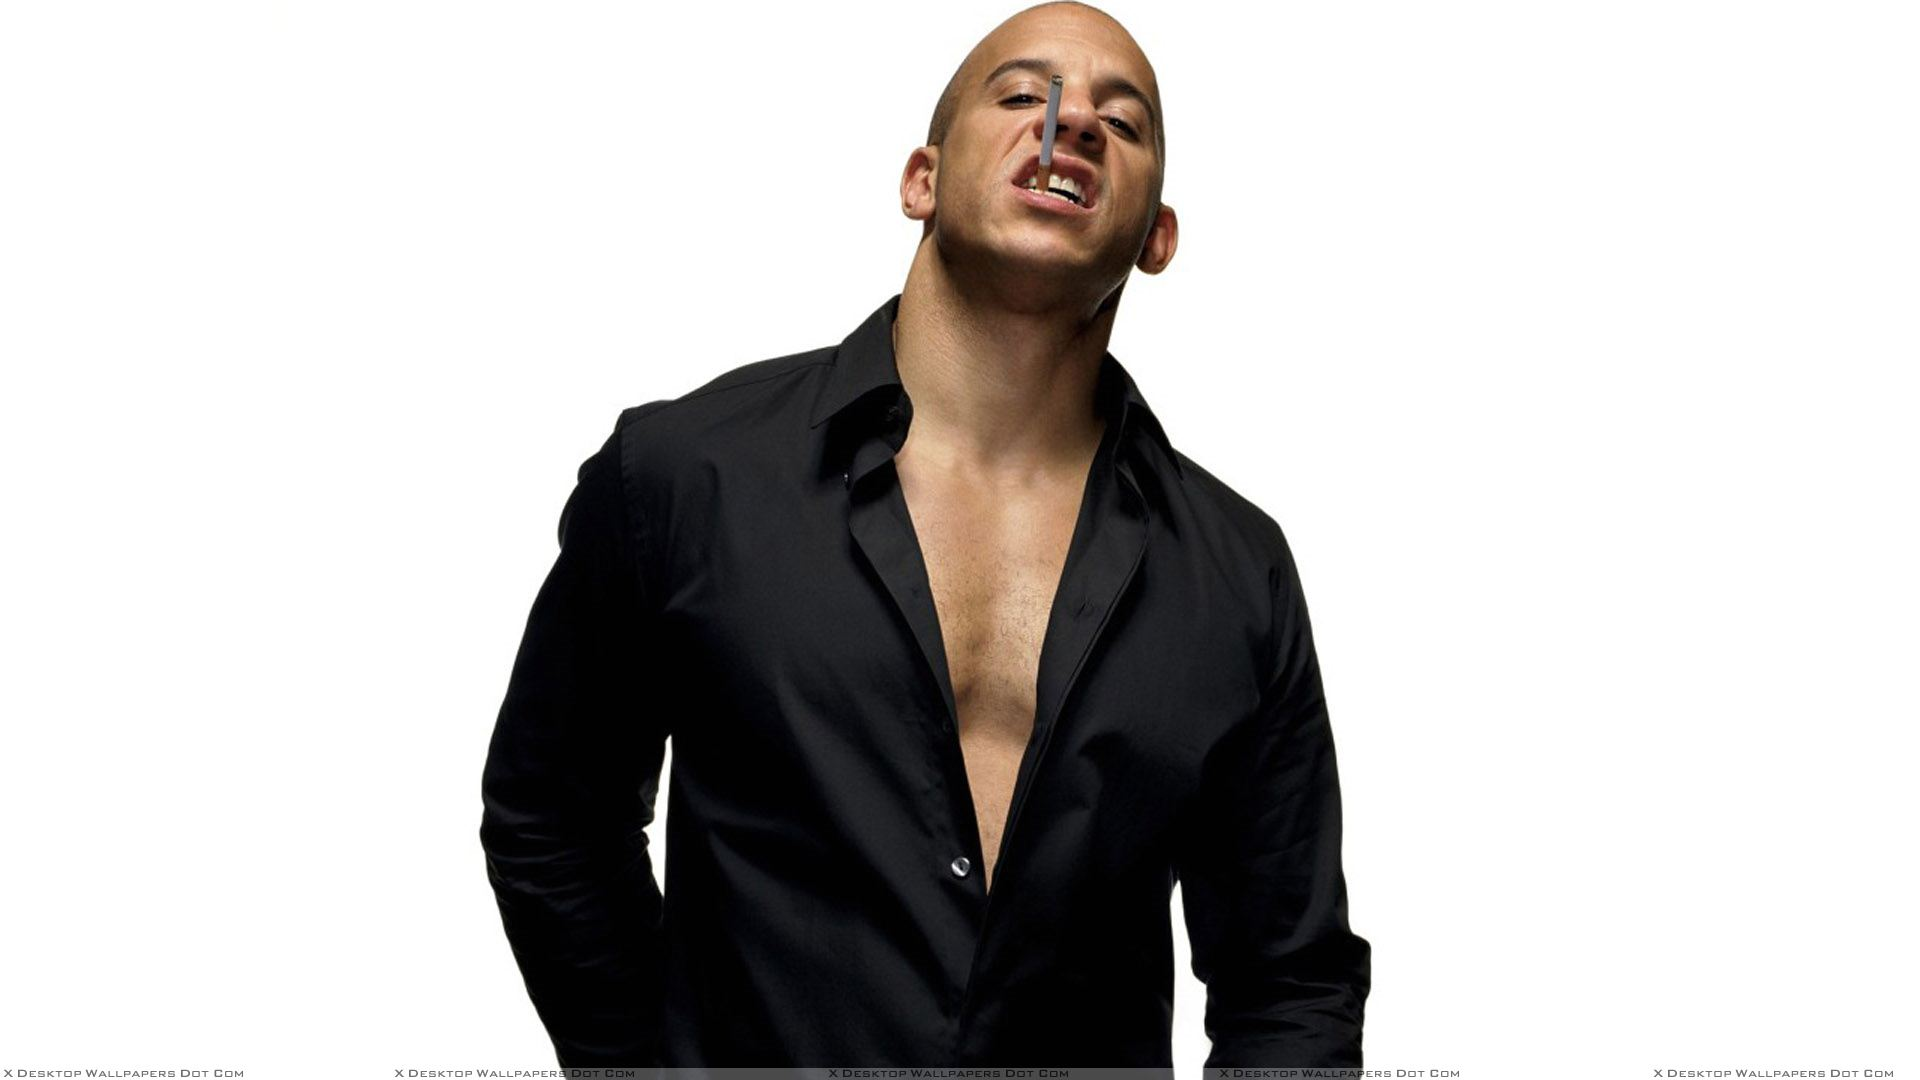 vin diesel cigarette in mouth in black shirt photoshoot wallpaper